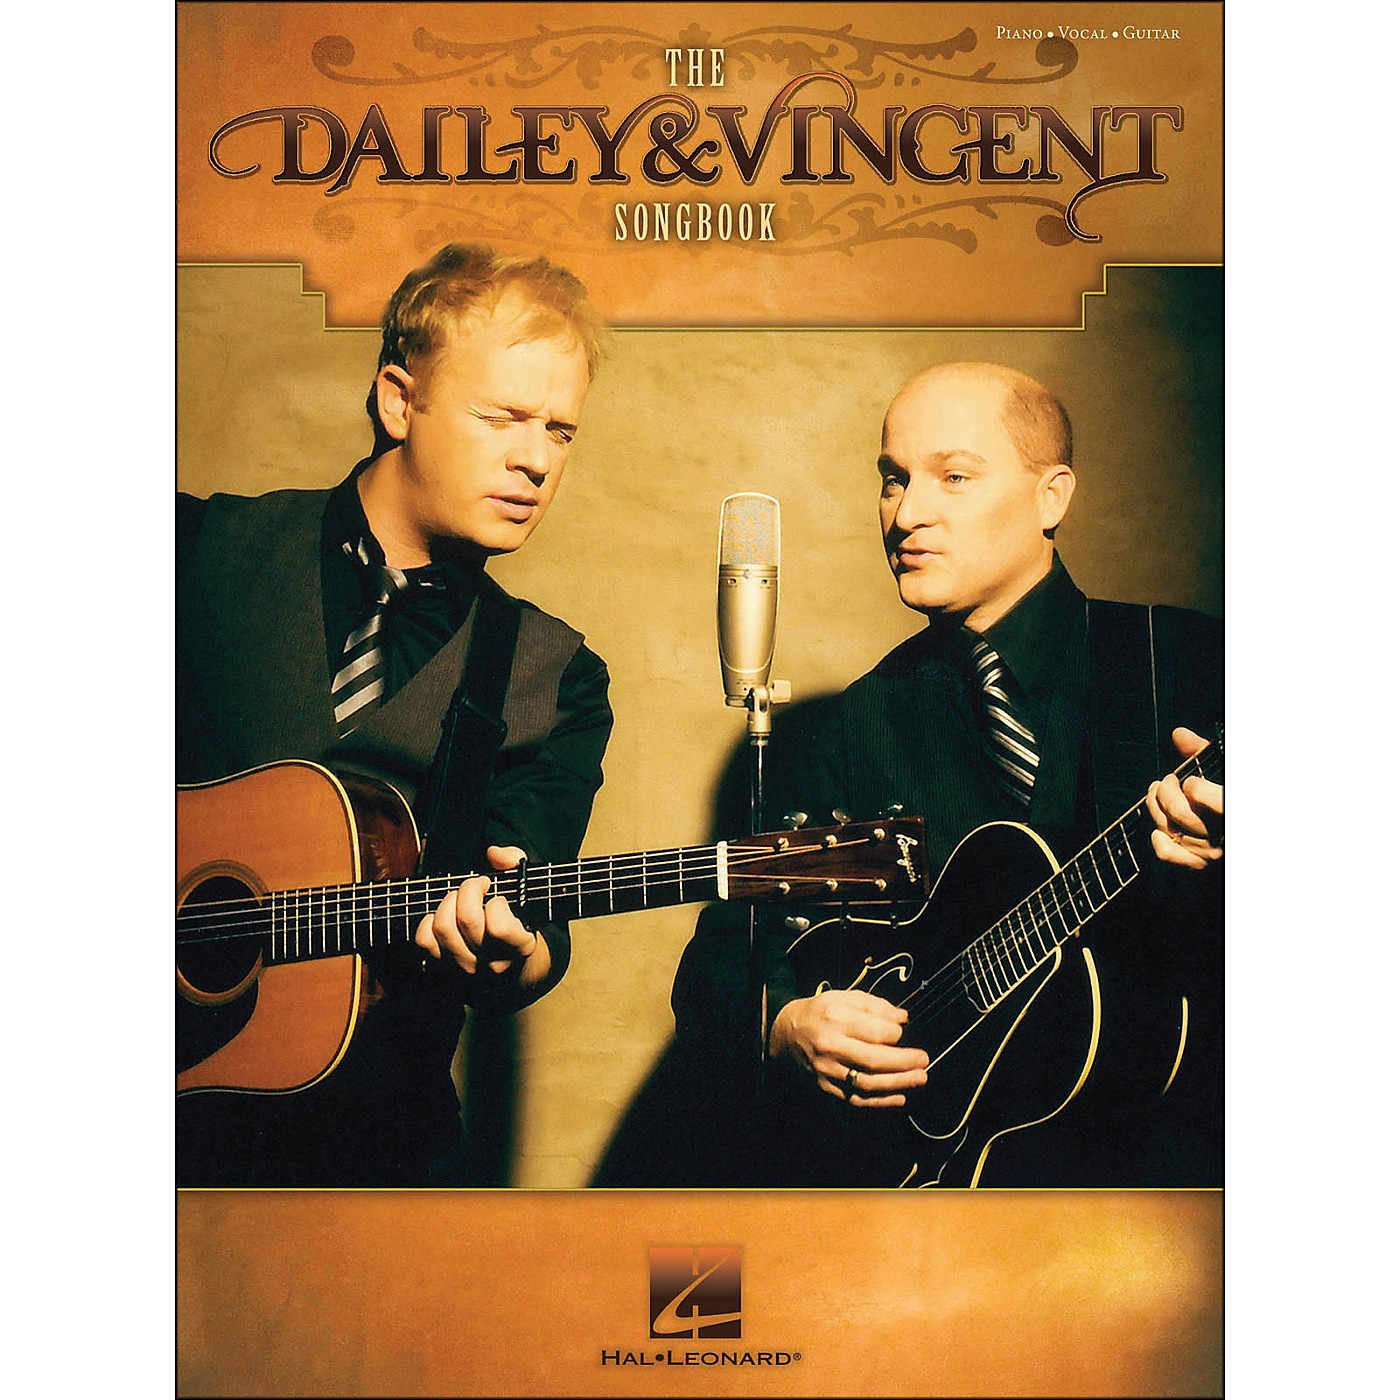 Hal Leonard The Dailey & Vincent Songbook arranged for piano, vocal, and guitar (P/V/G) thumbnail